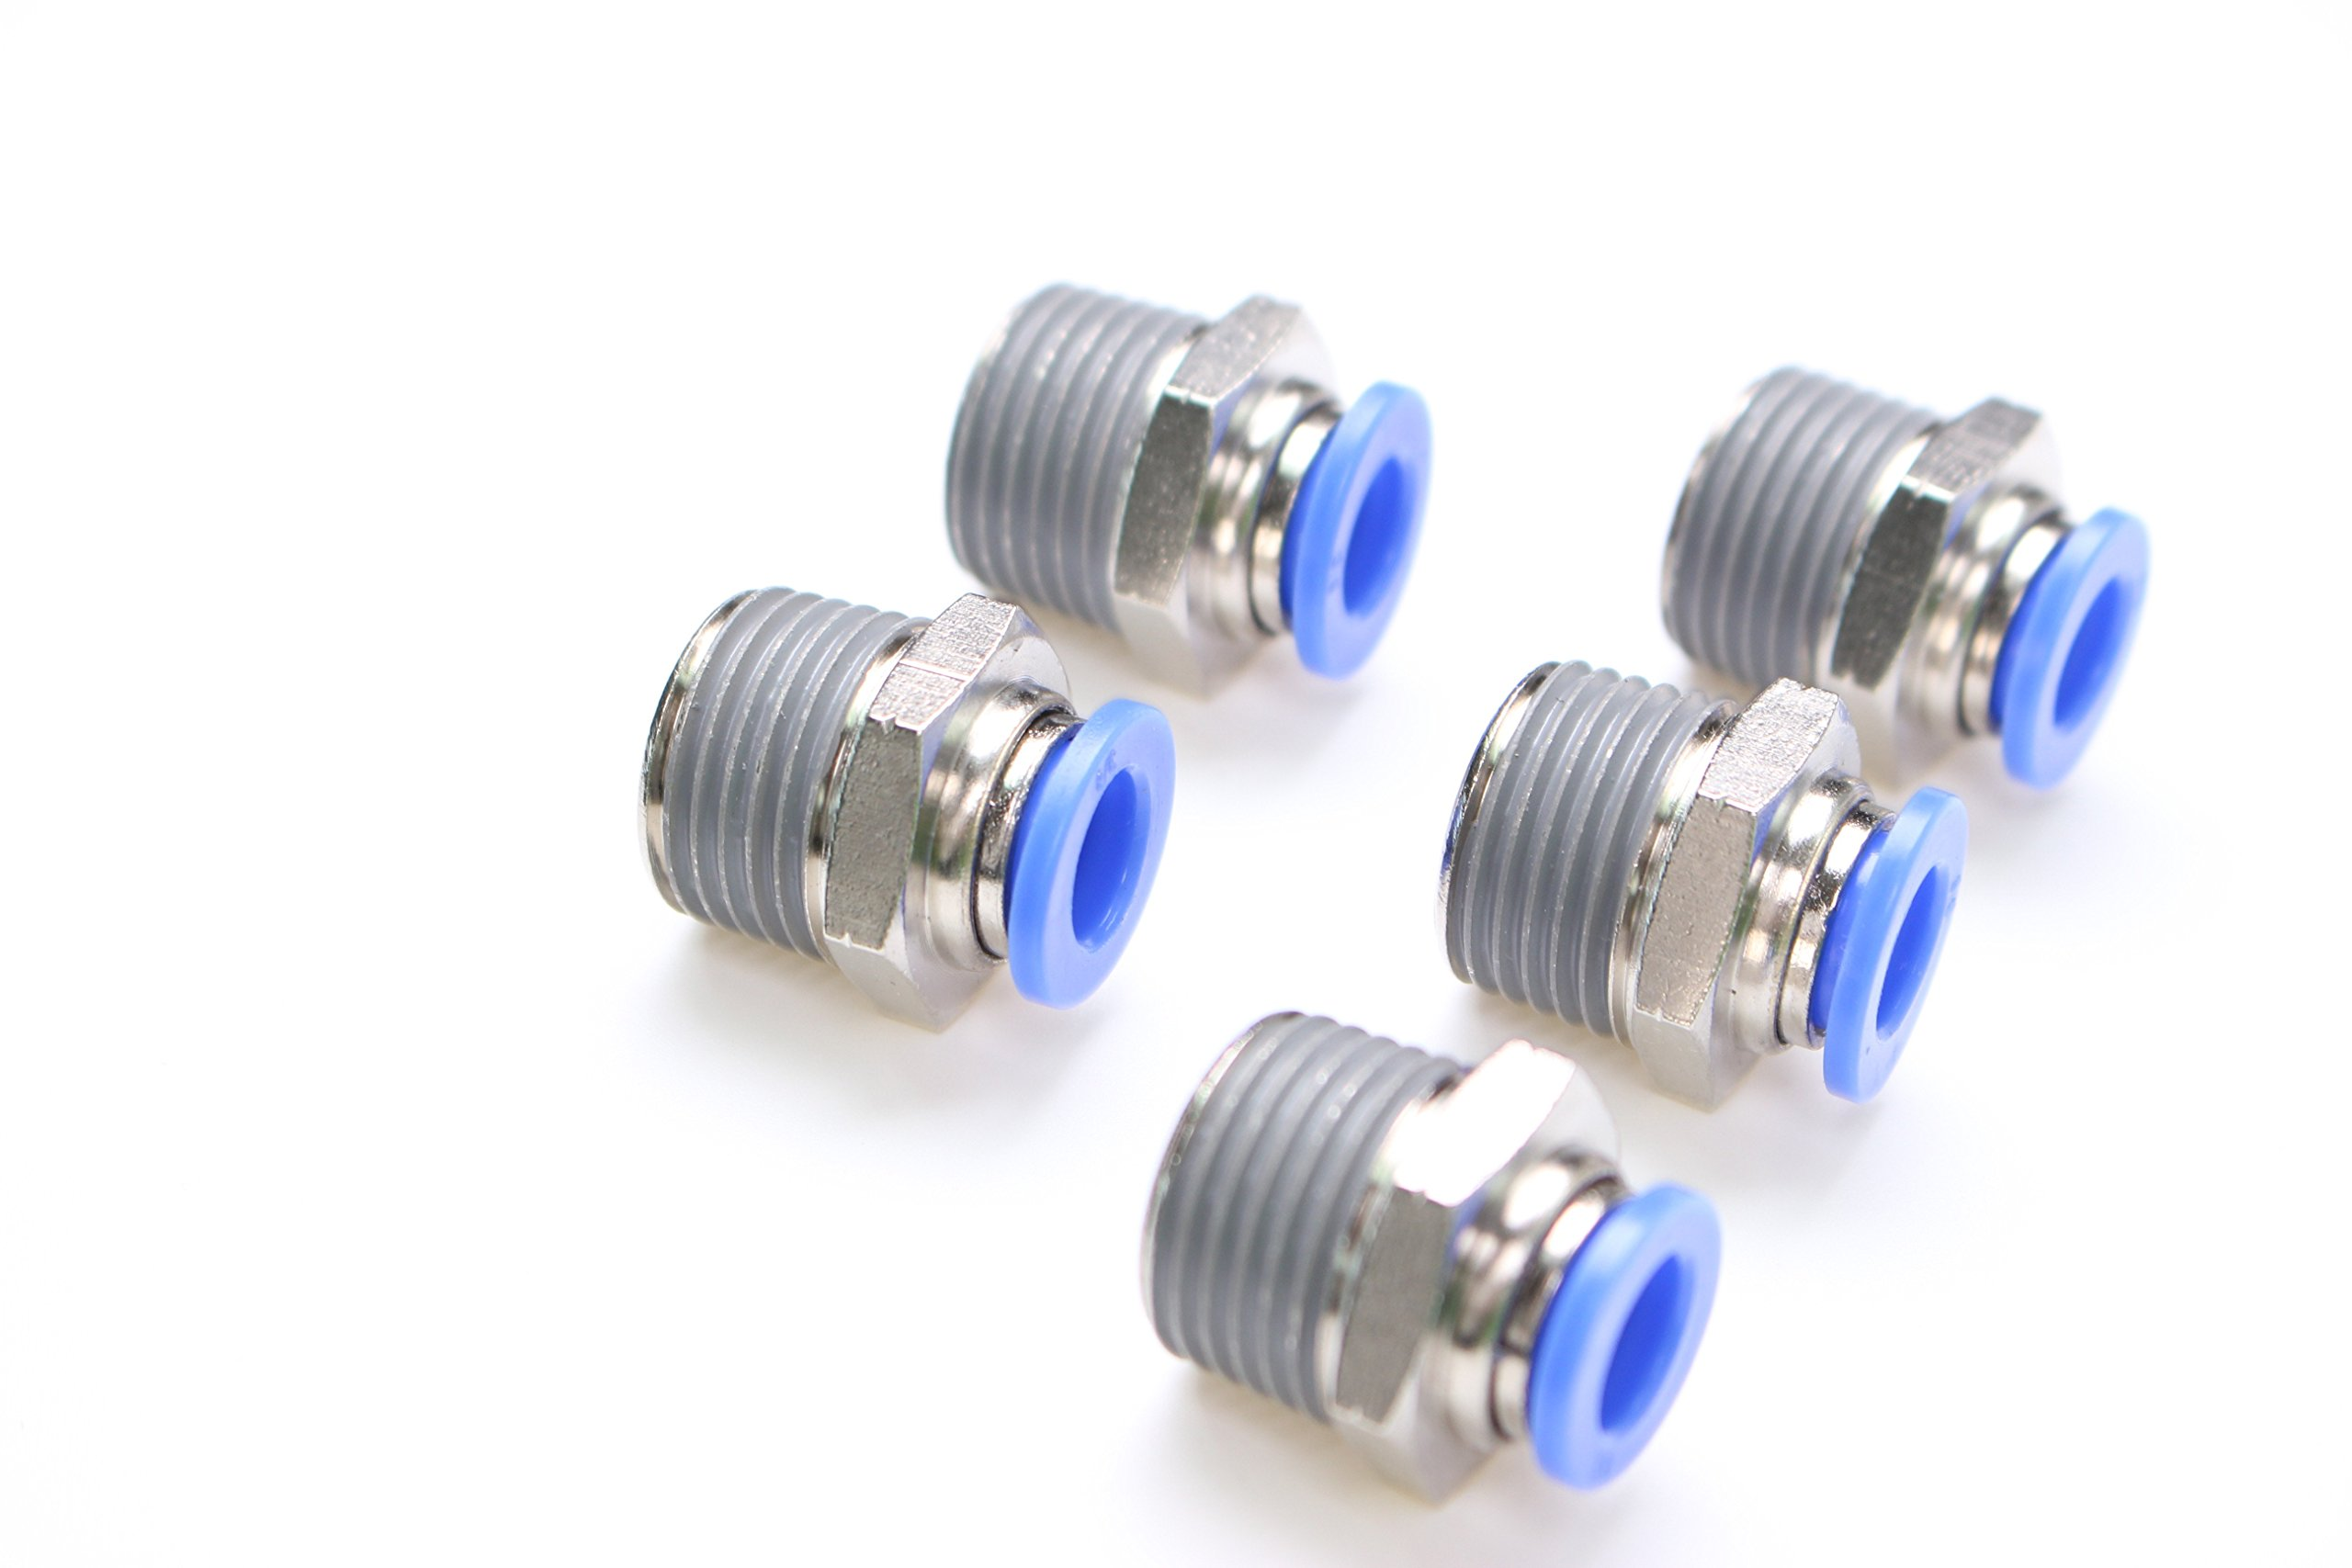 Union Tee 1//4 Tube DOT Approved Pack of 5 PneumaticPlus Air Supsension Push-in Lock Fitting